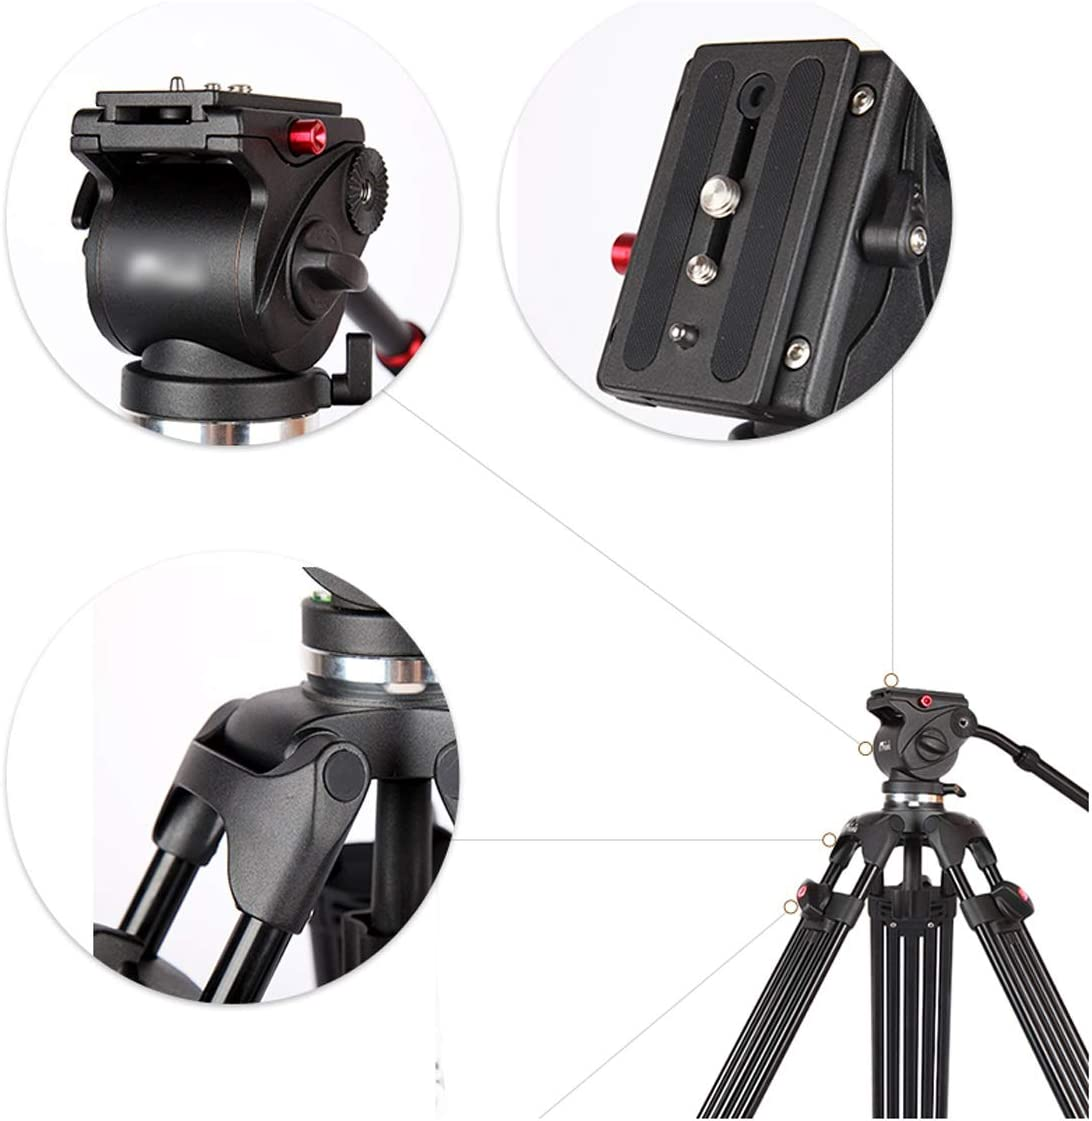 CJGXJZJ Camera Tripod 1.85 M Professional Camera Hydraulic Damping PTZ Set Micro Movie Wedding Video DV Video Conference Video Video SLR Tripod Aluminum Bracket Tripod Design : B